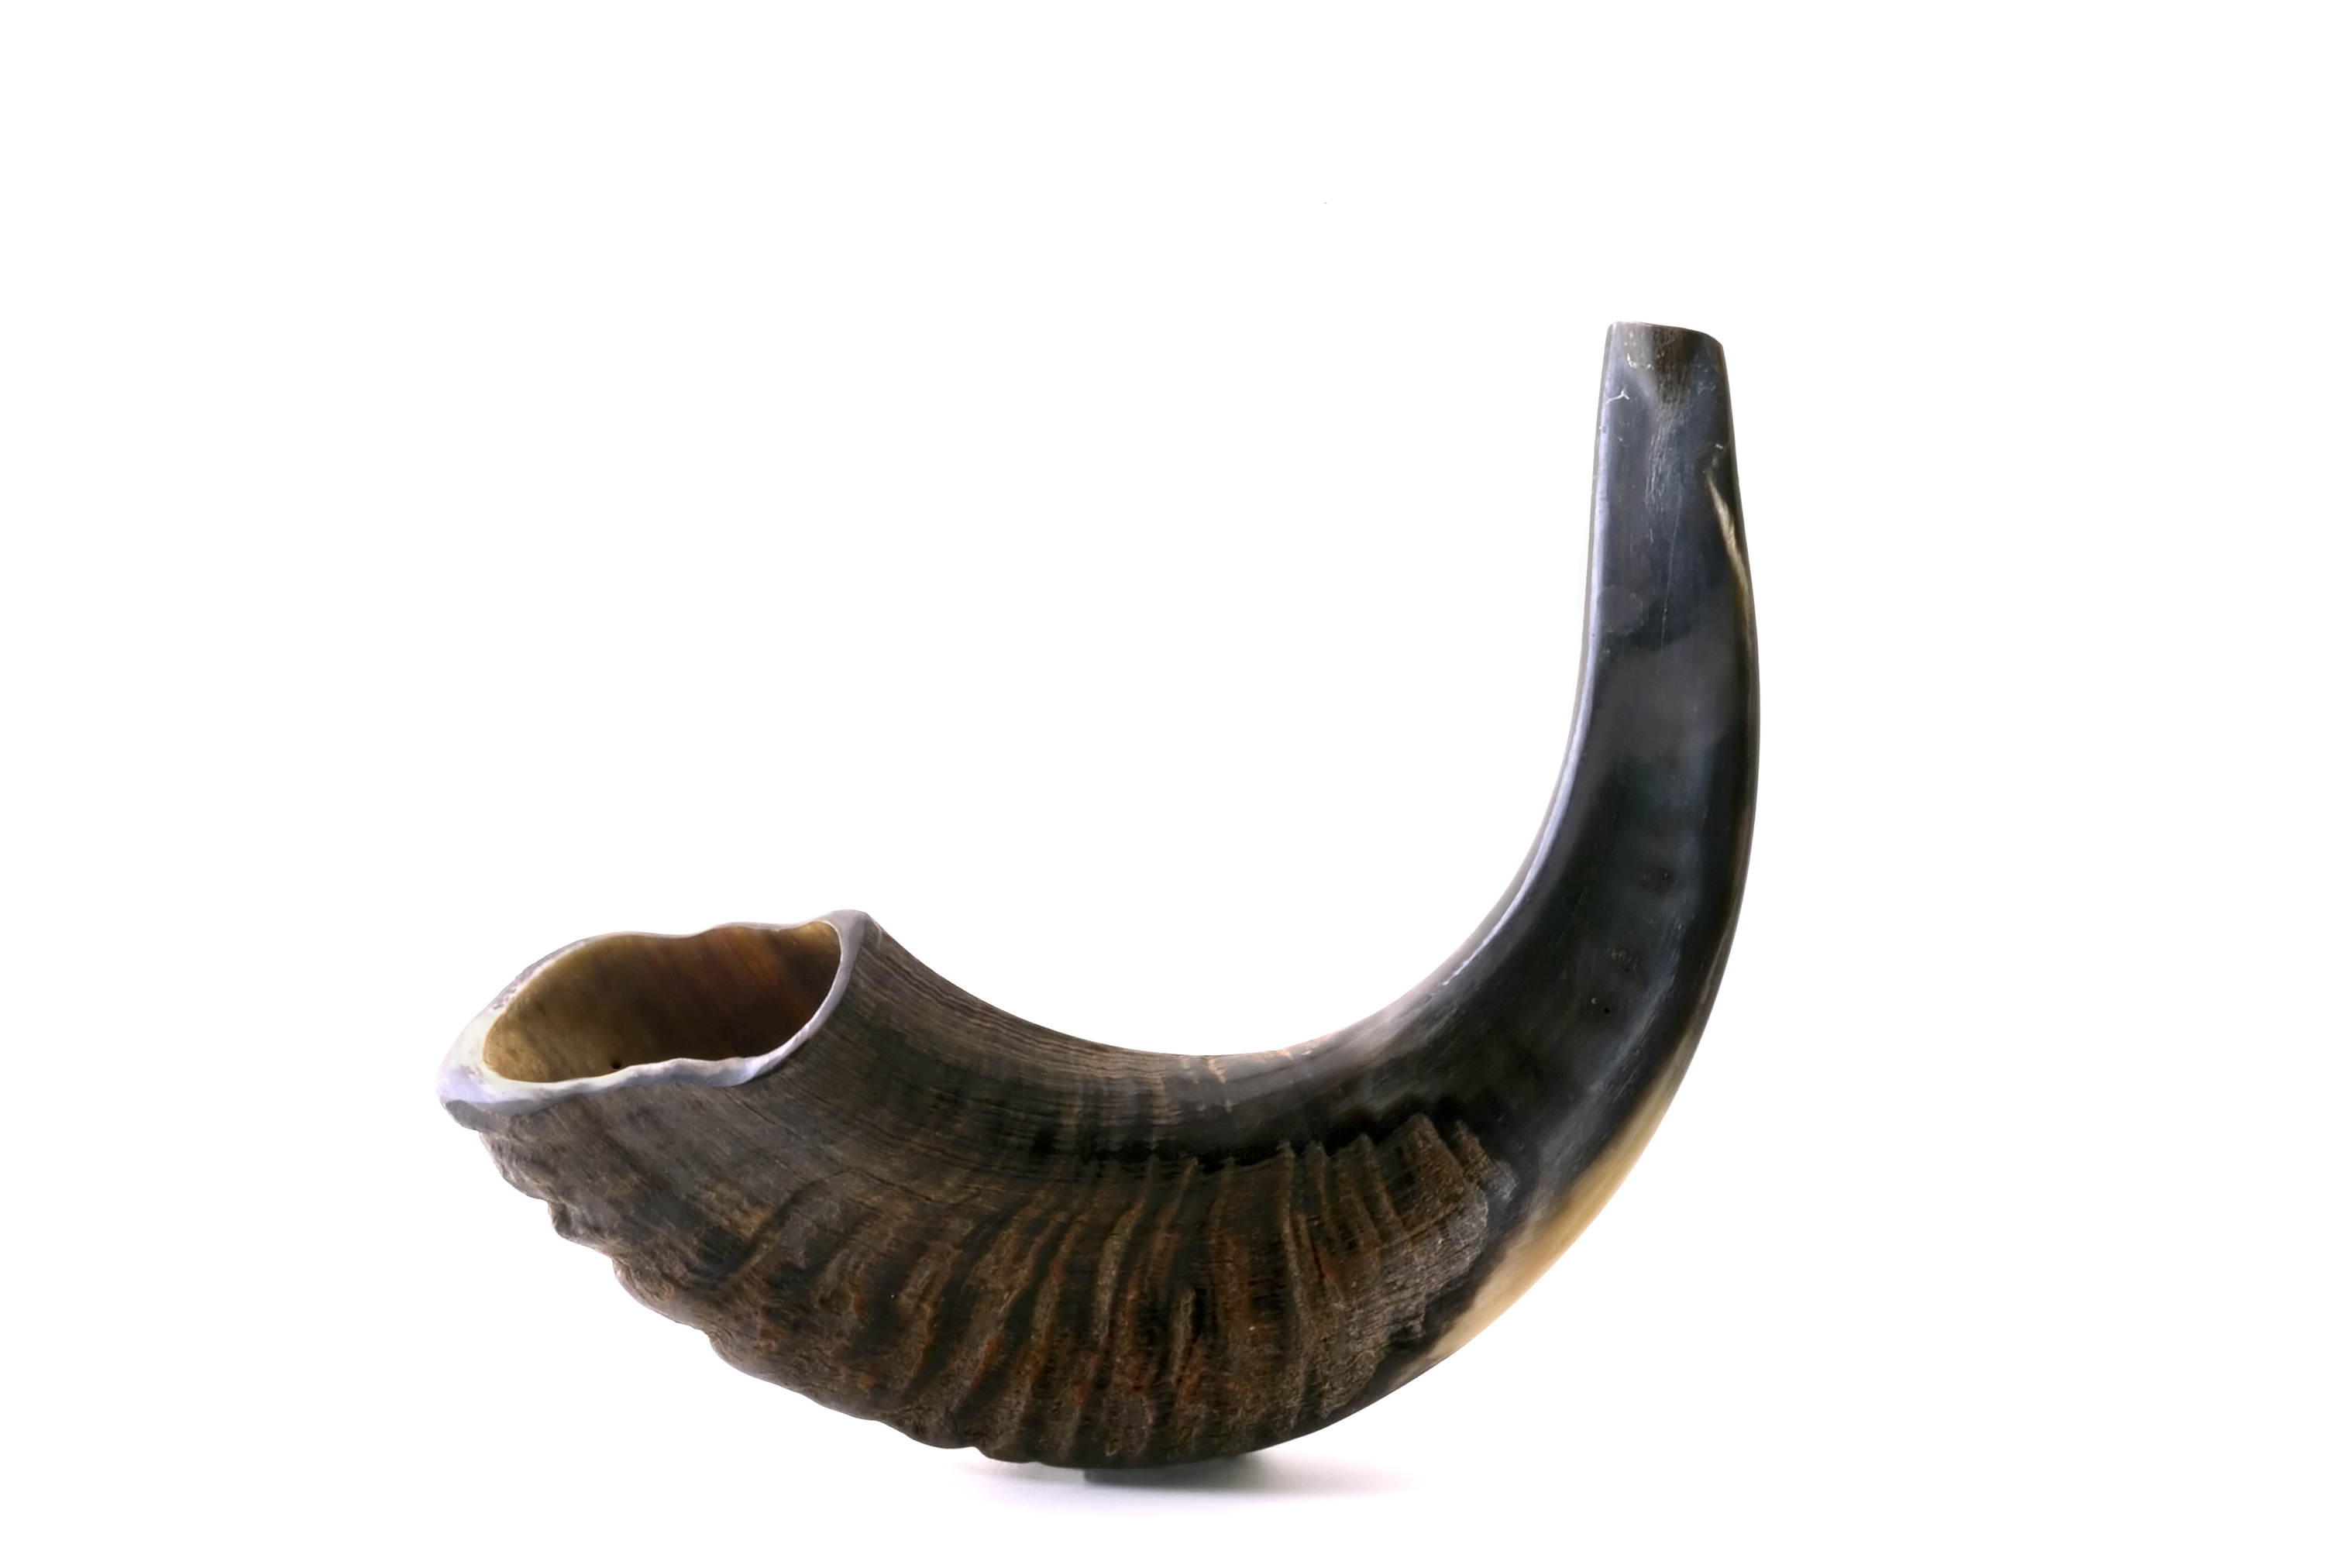 Image result for shofar images copyright free